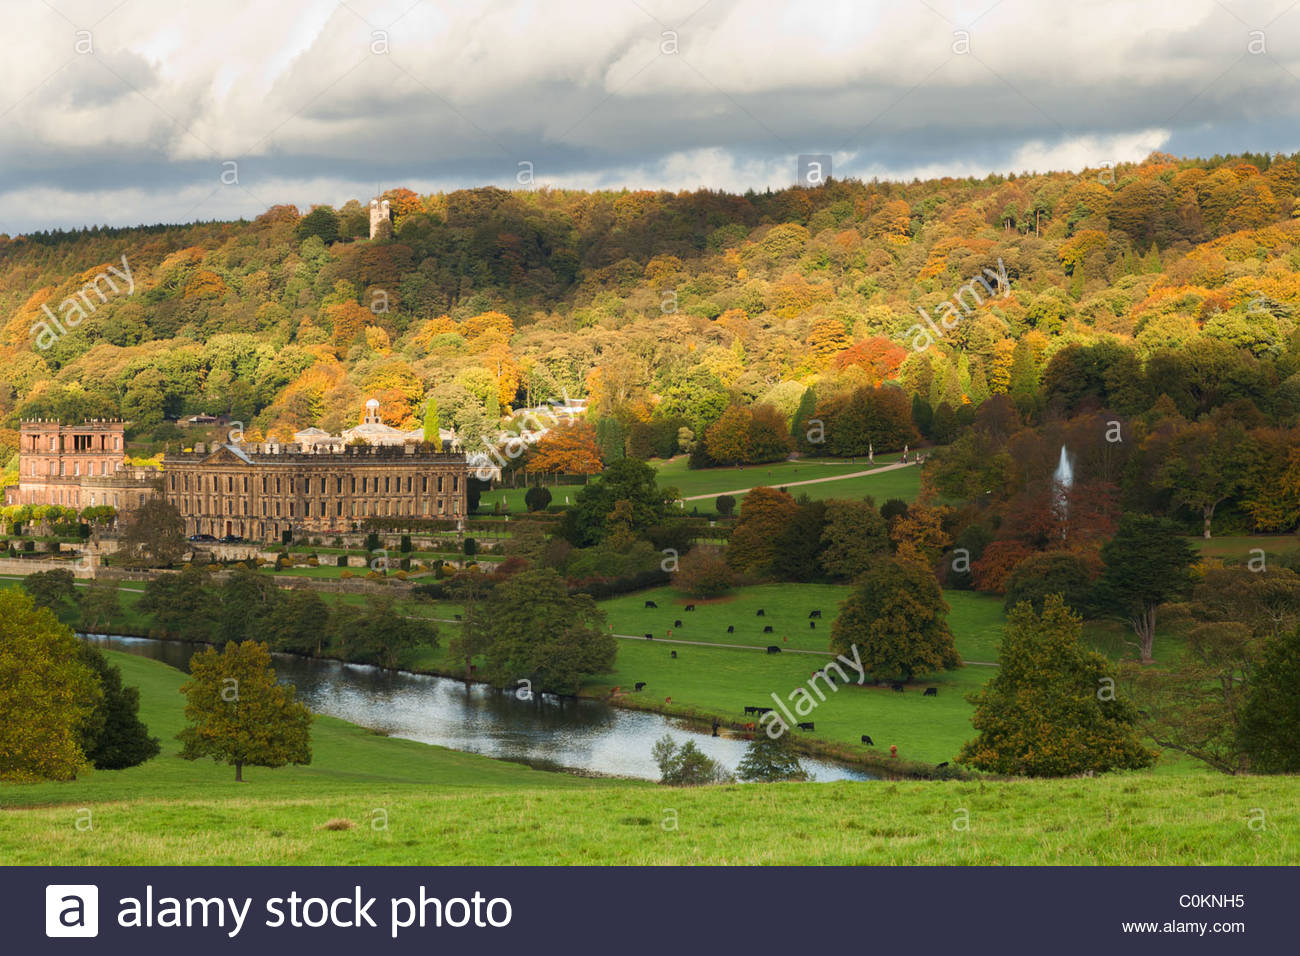 A view of Chatsworth House and Hunting Tower from across the River Derwent - Stock Image